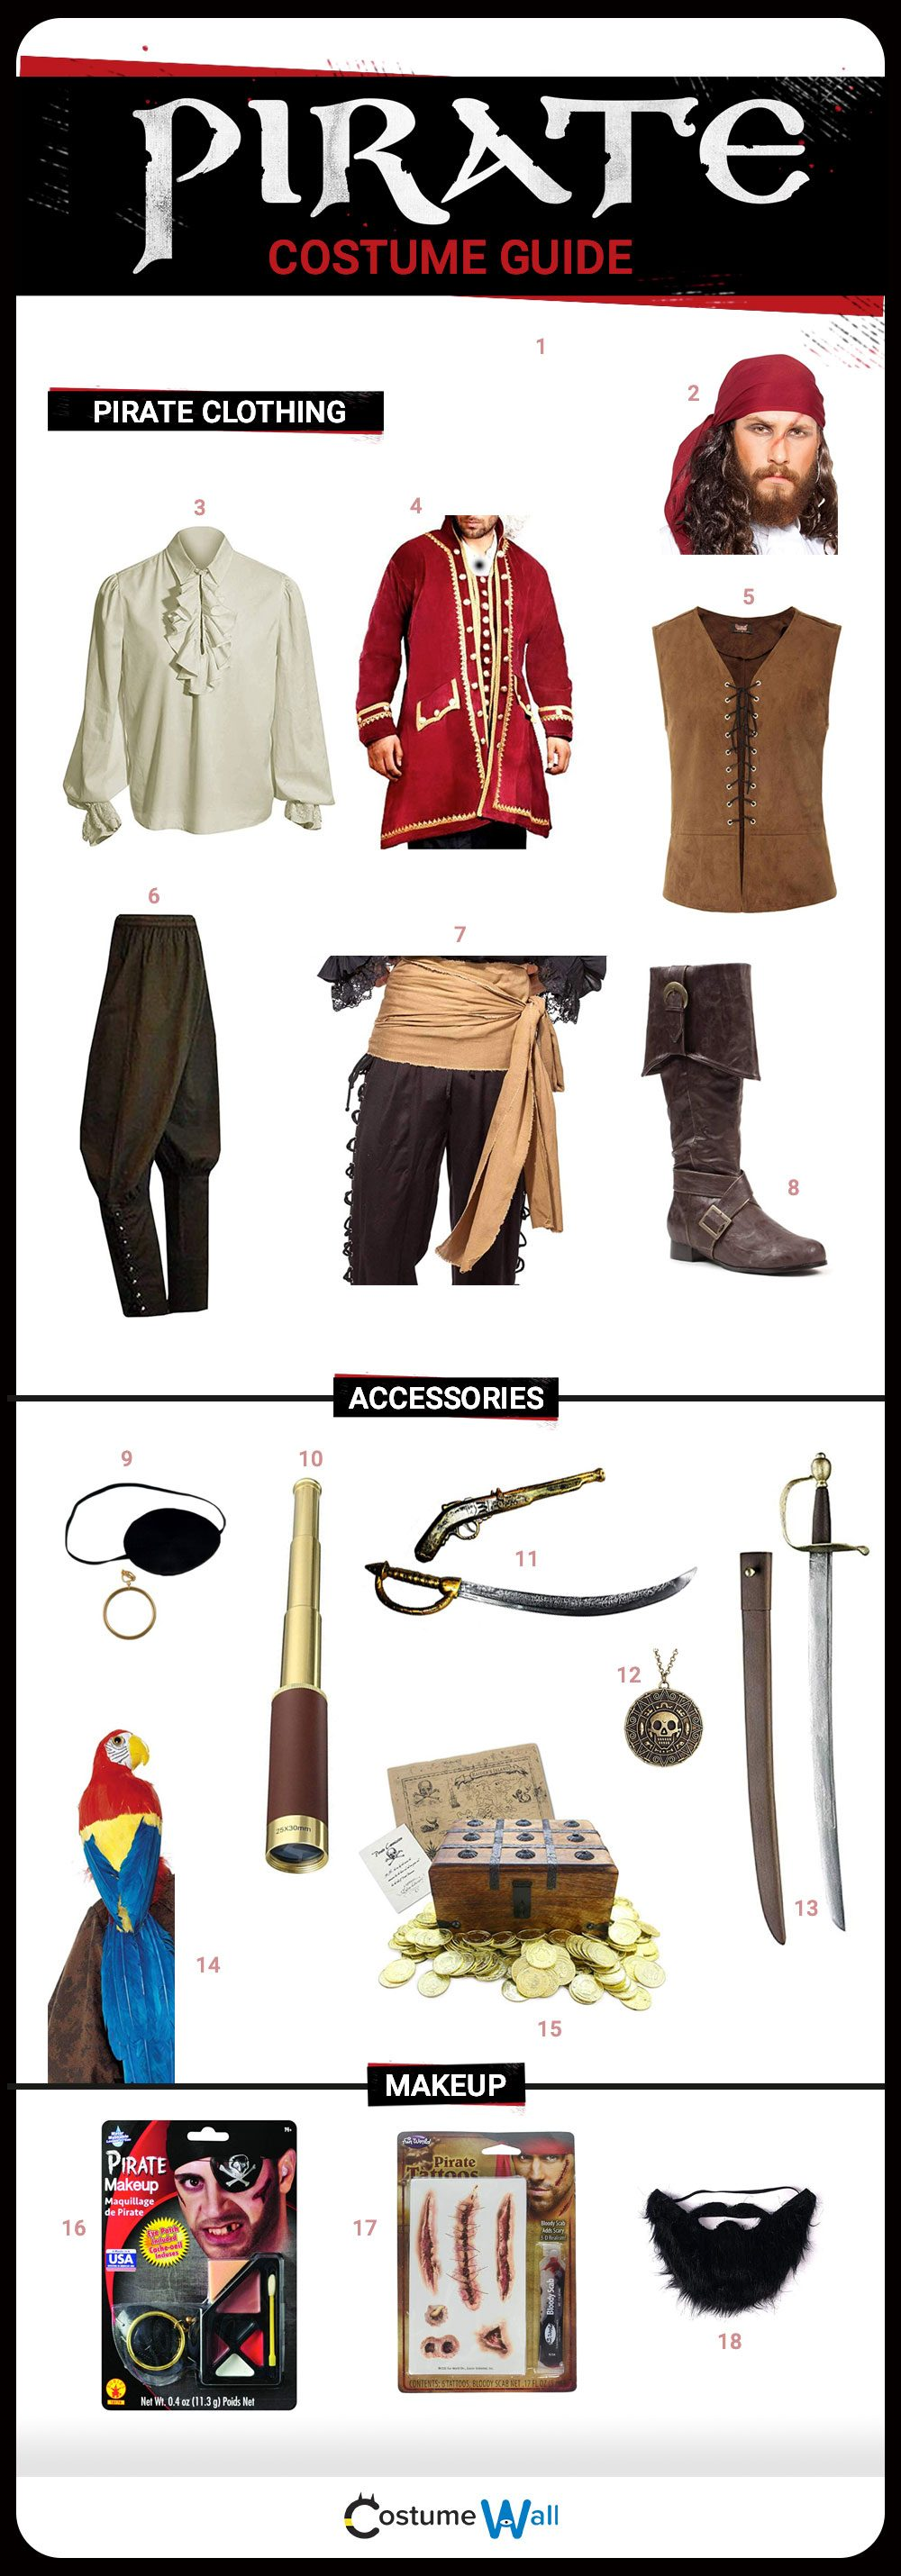 Pirate Costume Guide